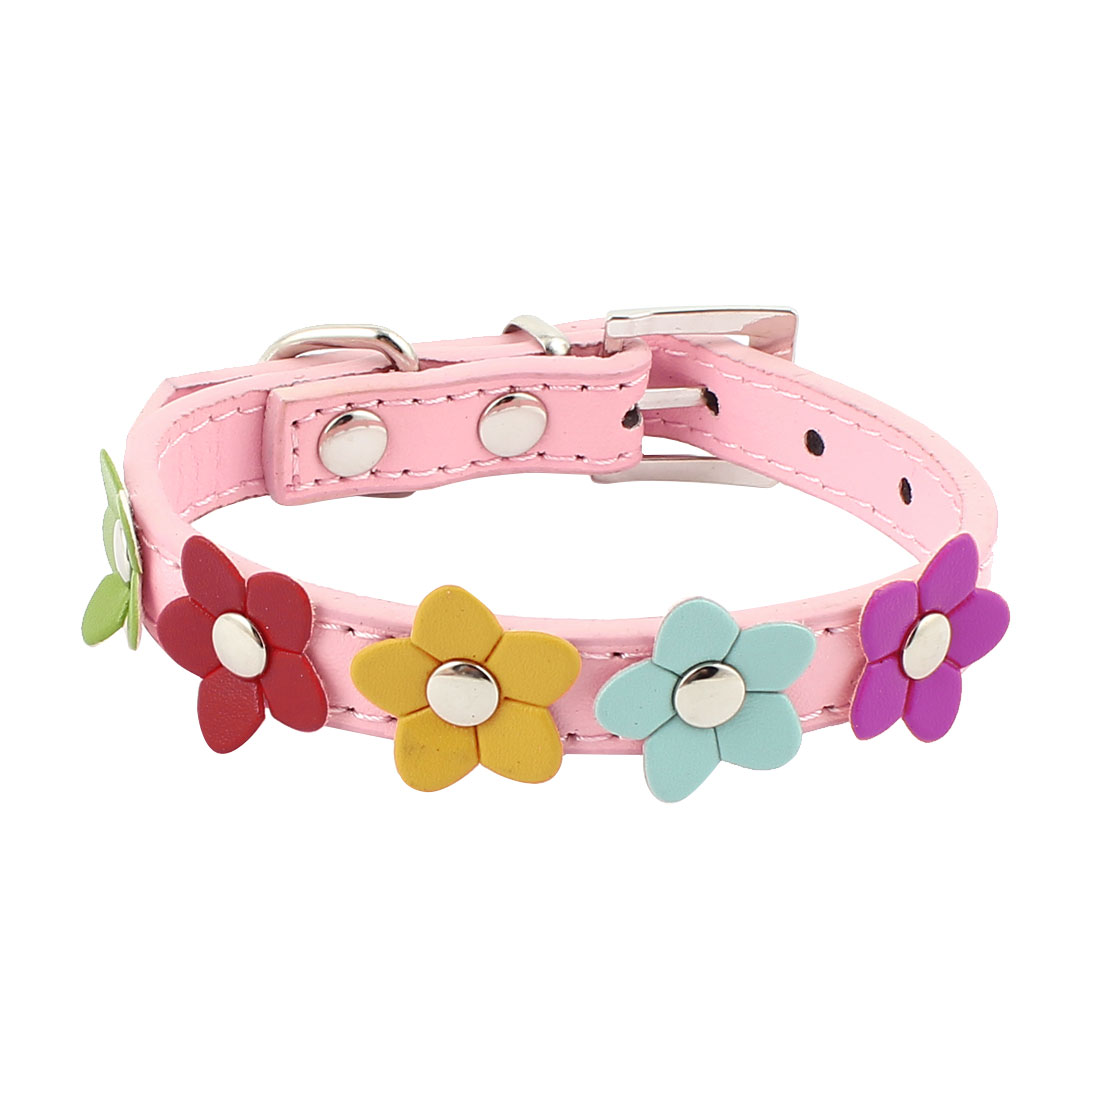 Puppy Faux Leather Adjustable Buckle Pet Dog Neck Collar Belt Strap Pink Size XS